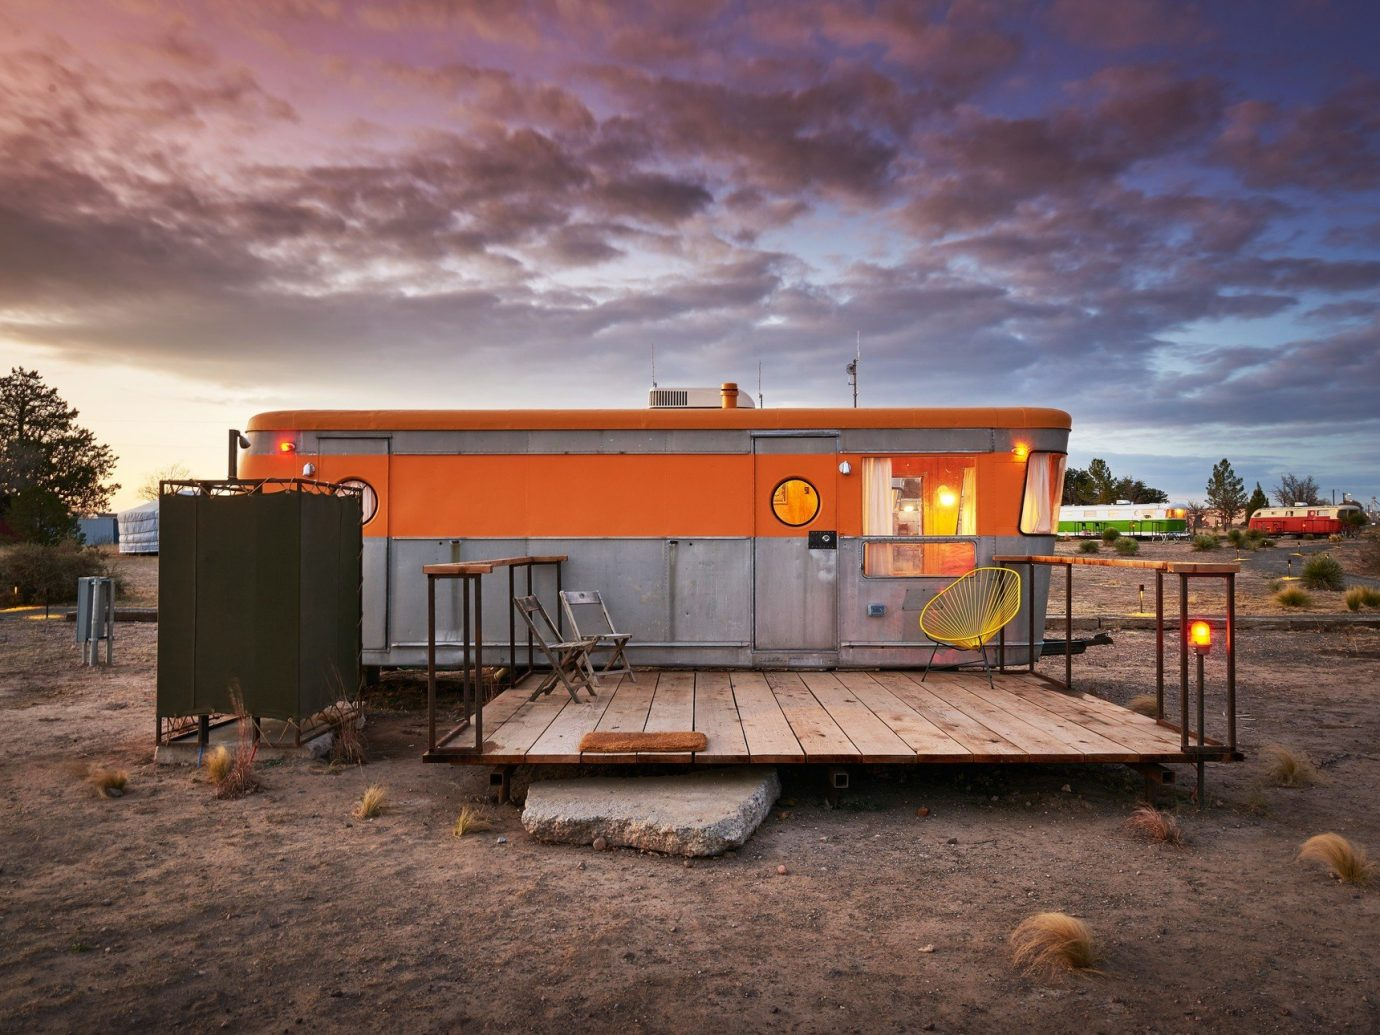 airstream ambient lighting artistic artsy calm dawn dusk Exterior Hip Hotels isolation Patio porch quirky remote serene Solo Travel Terrace trendy Trip Ideas sky ground outdoor transport orange shack cloudy